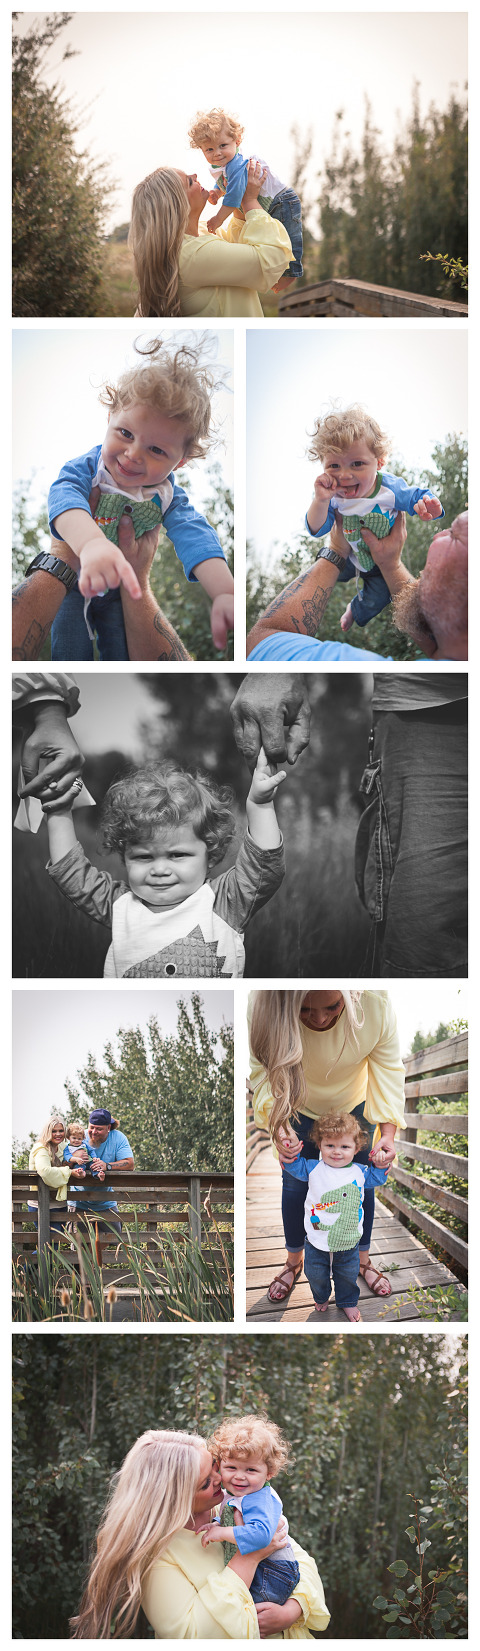 Frankie turns one, lifestyle family photography by Hailey haberman